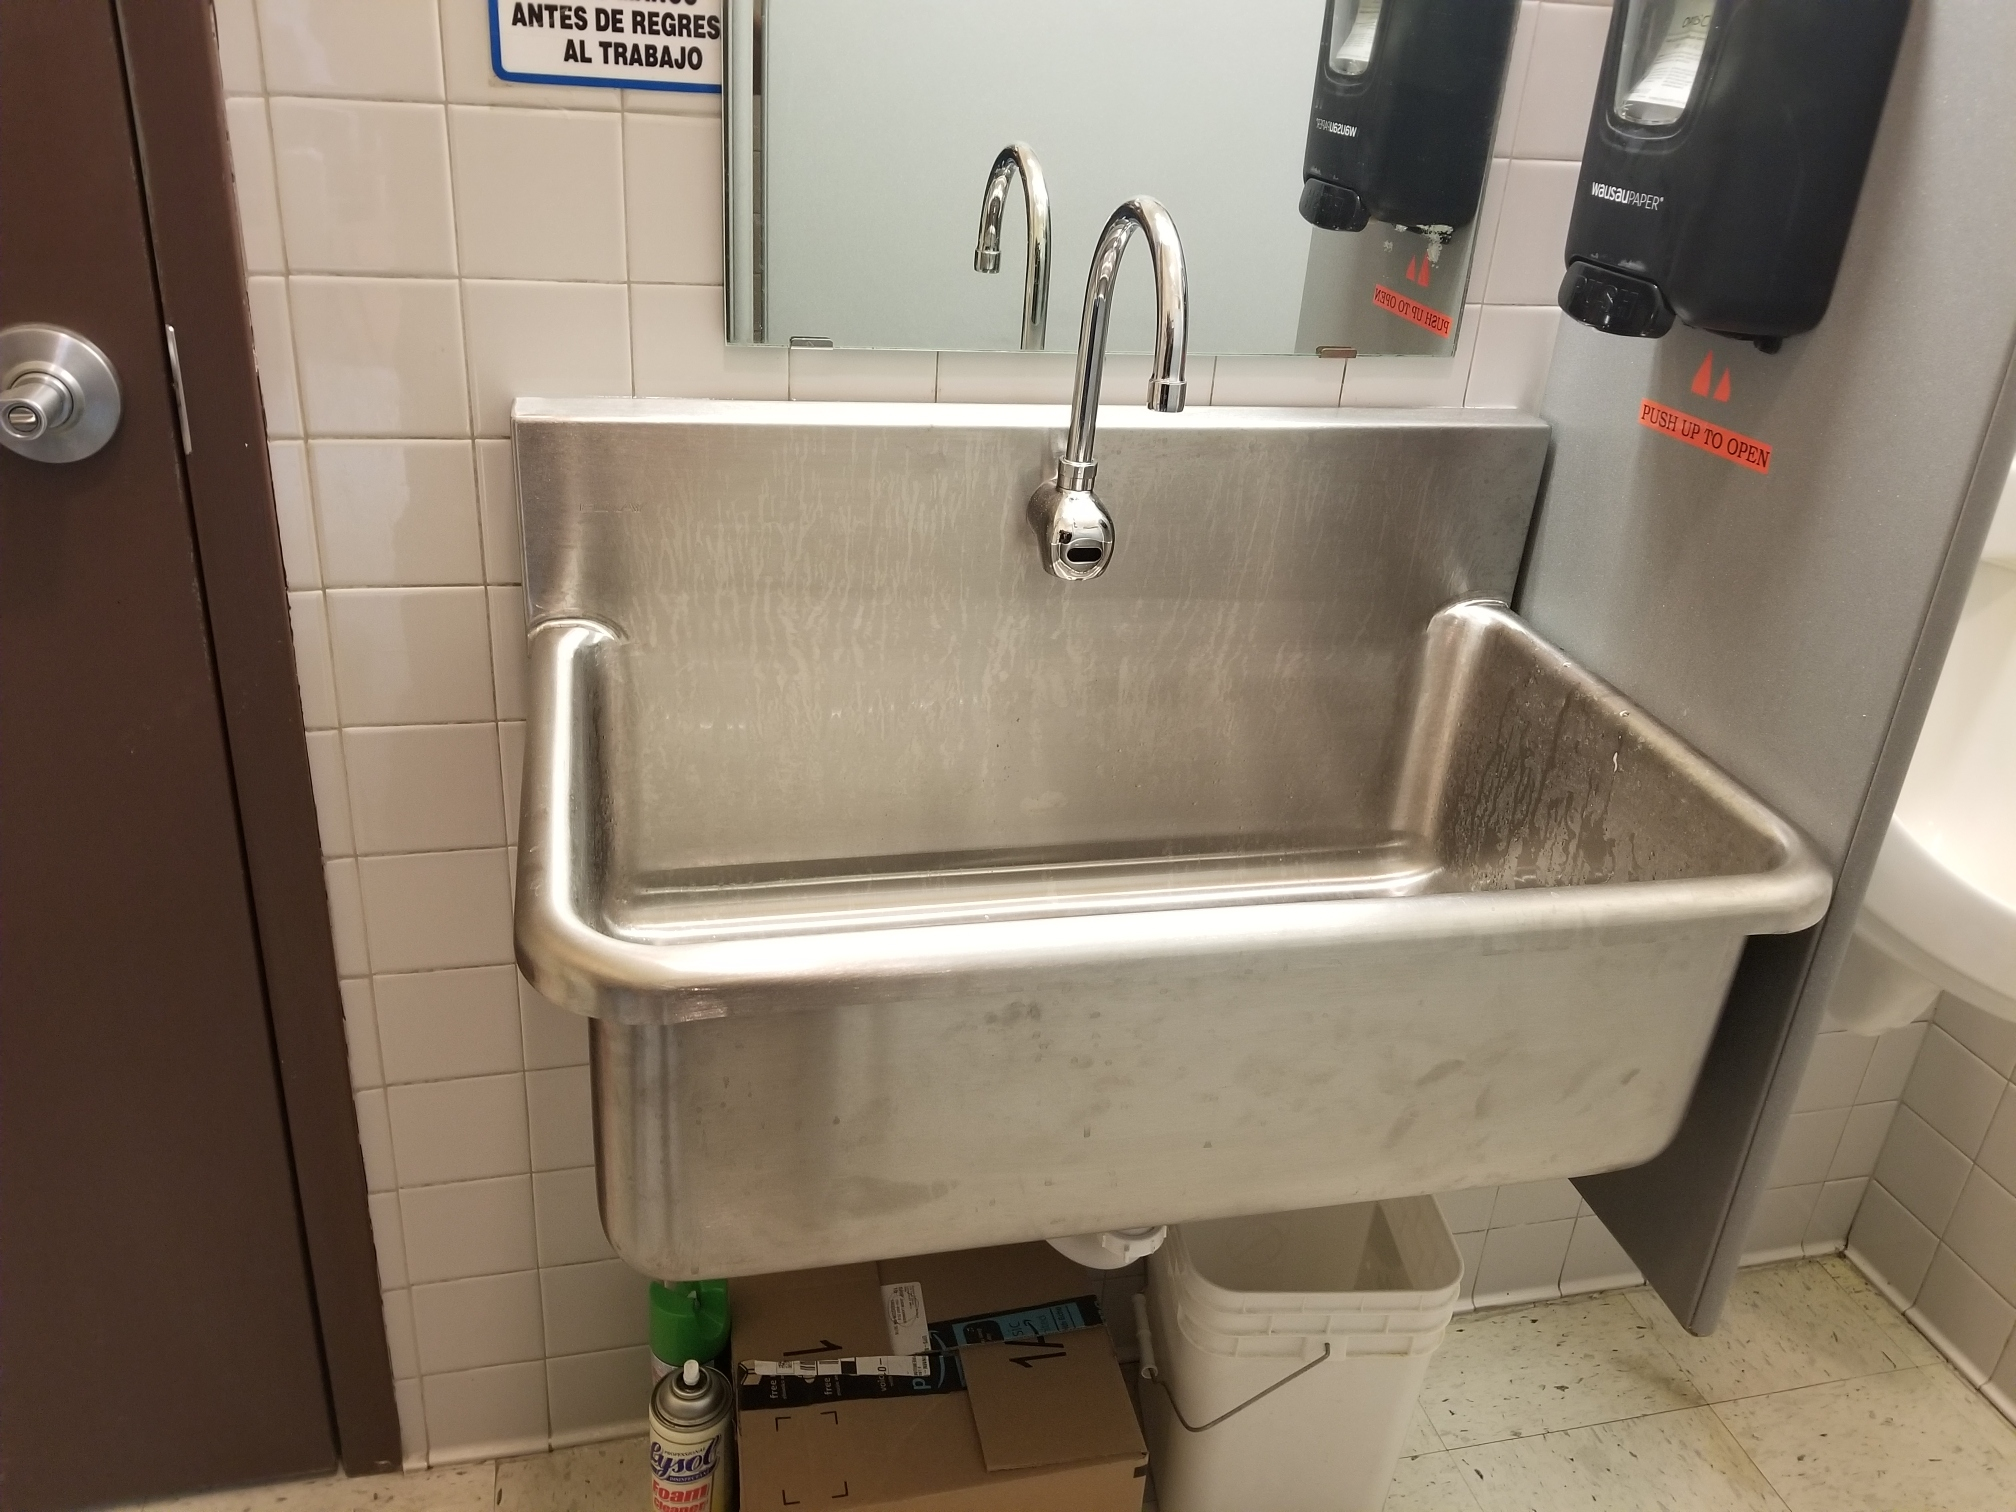 Commercial sink and faucet installation